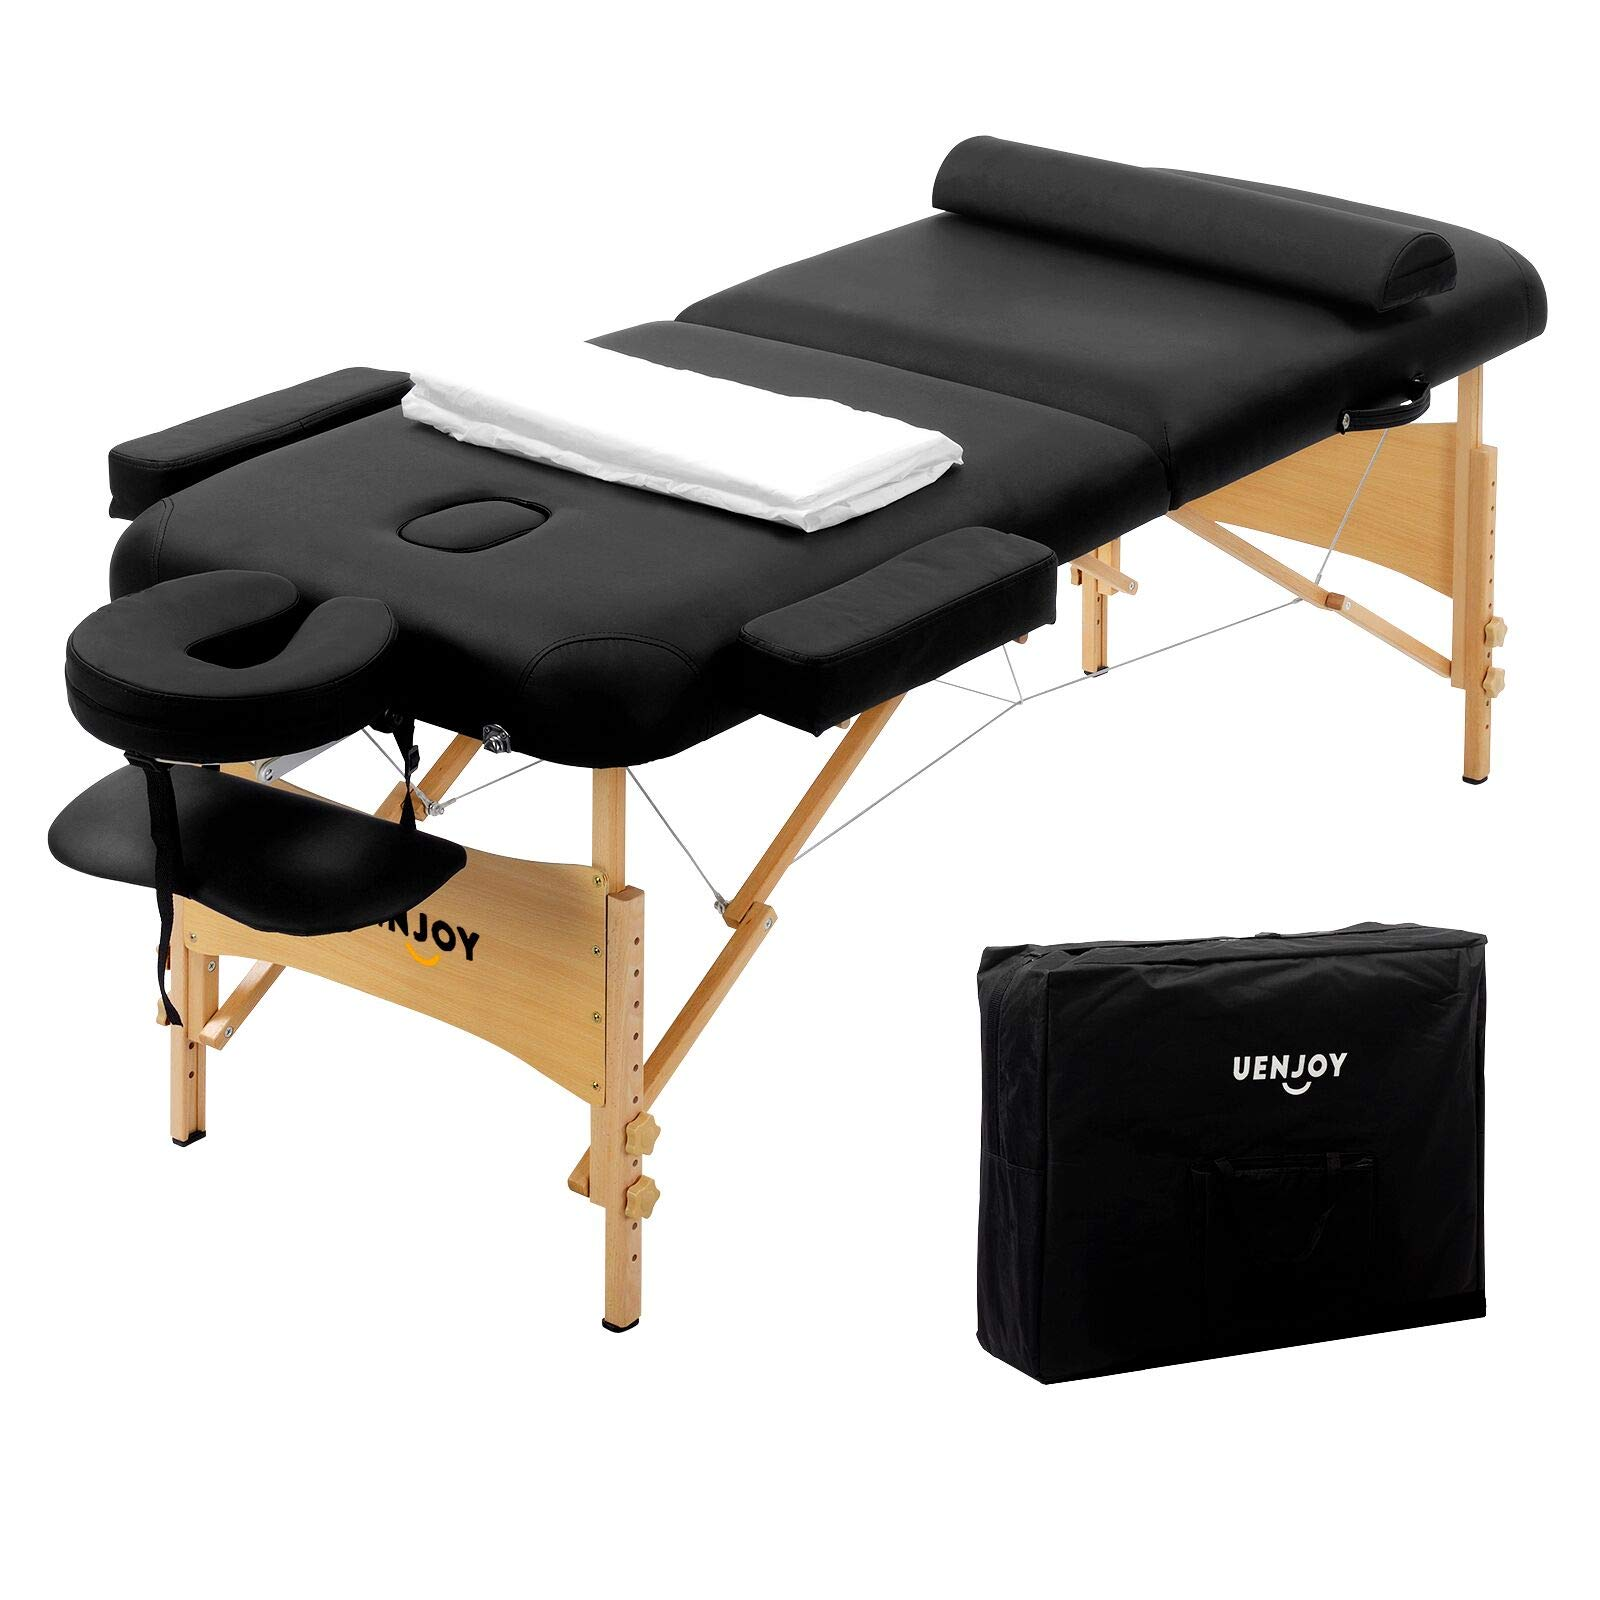 Uenjoy Massage Table 84'' Professional Folding Massage Bed Deluxe Model with Extra Width, Ultra-thick Sponge, PU Leather Surface & Additional Accessories, 2 Fold, Black